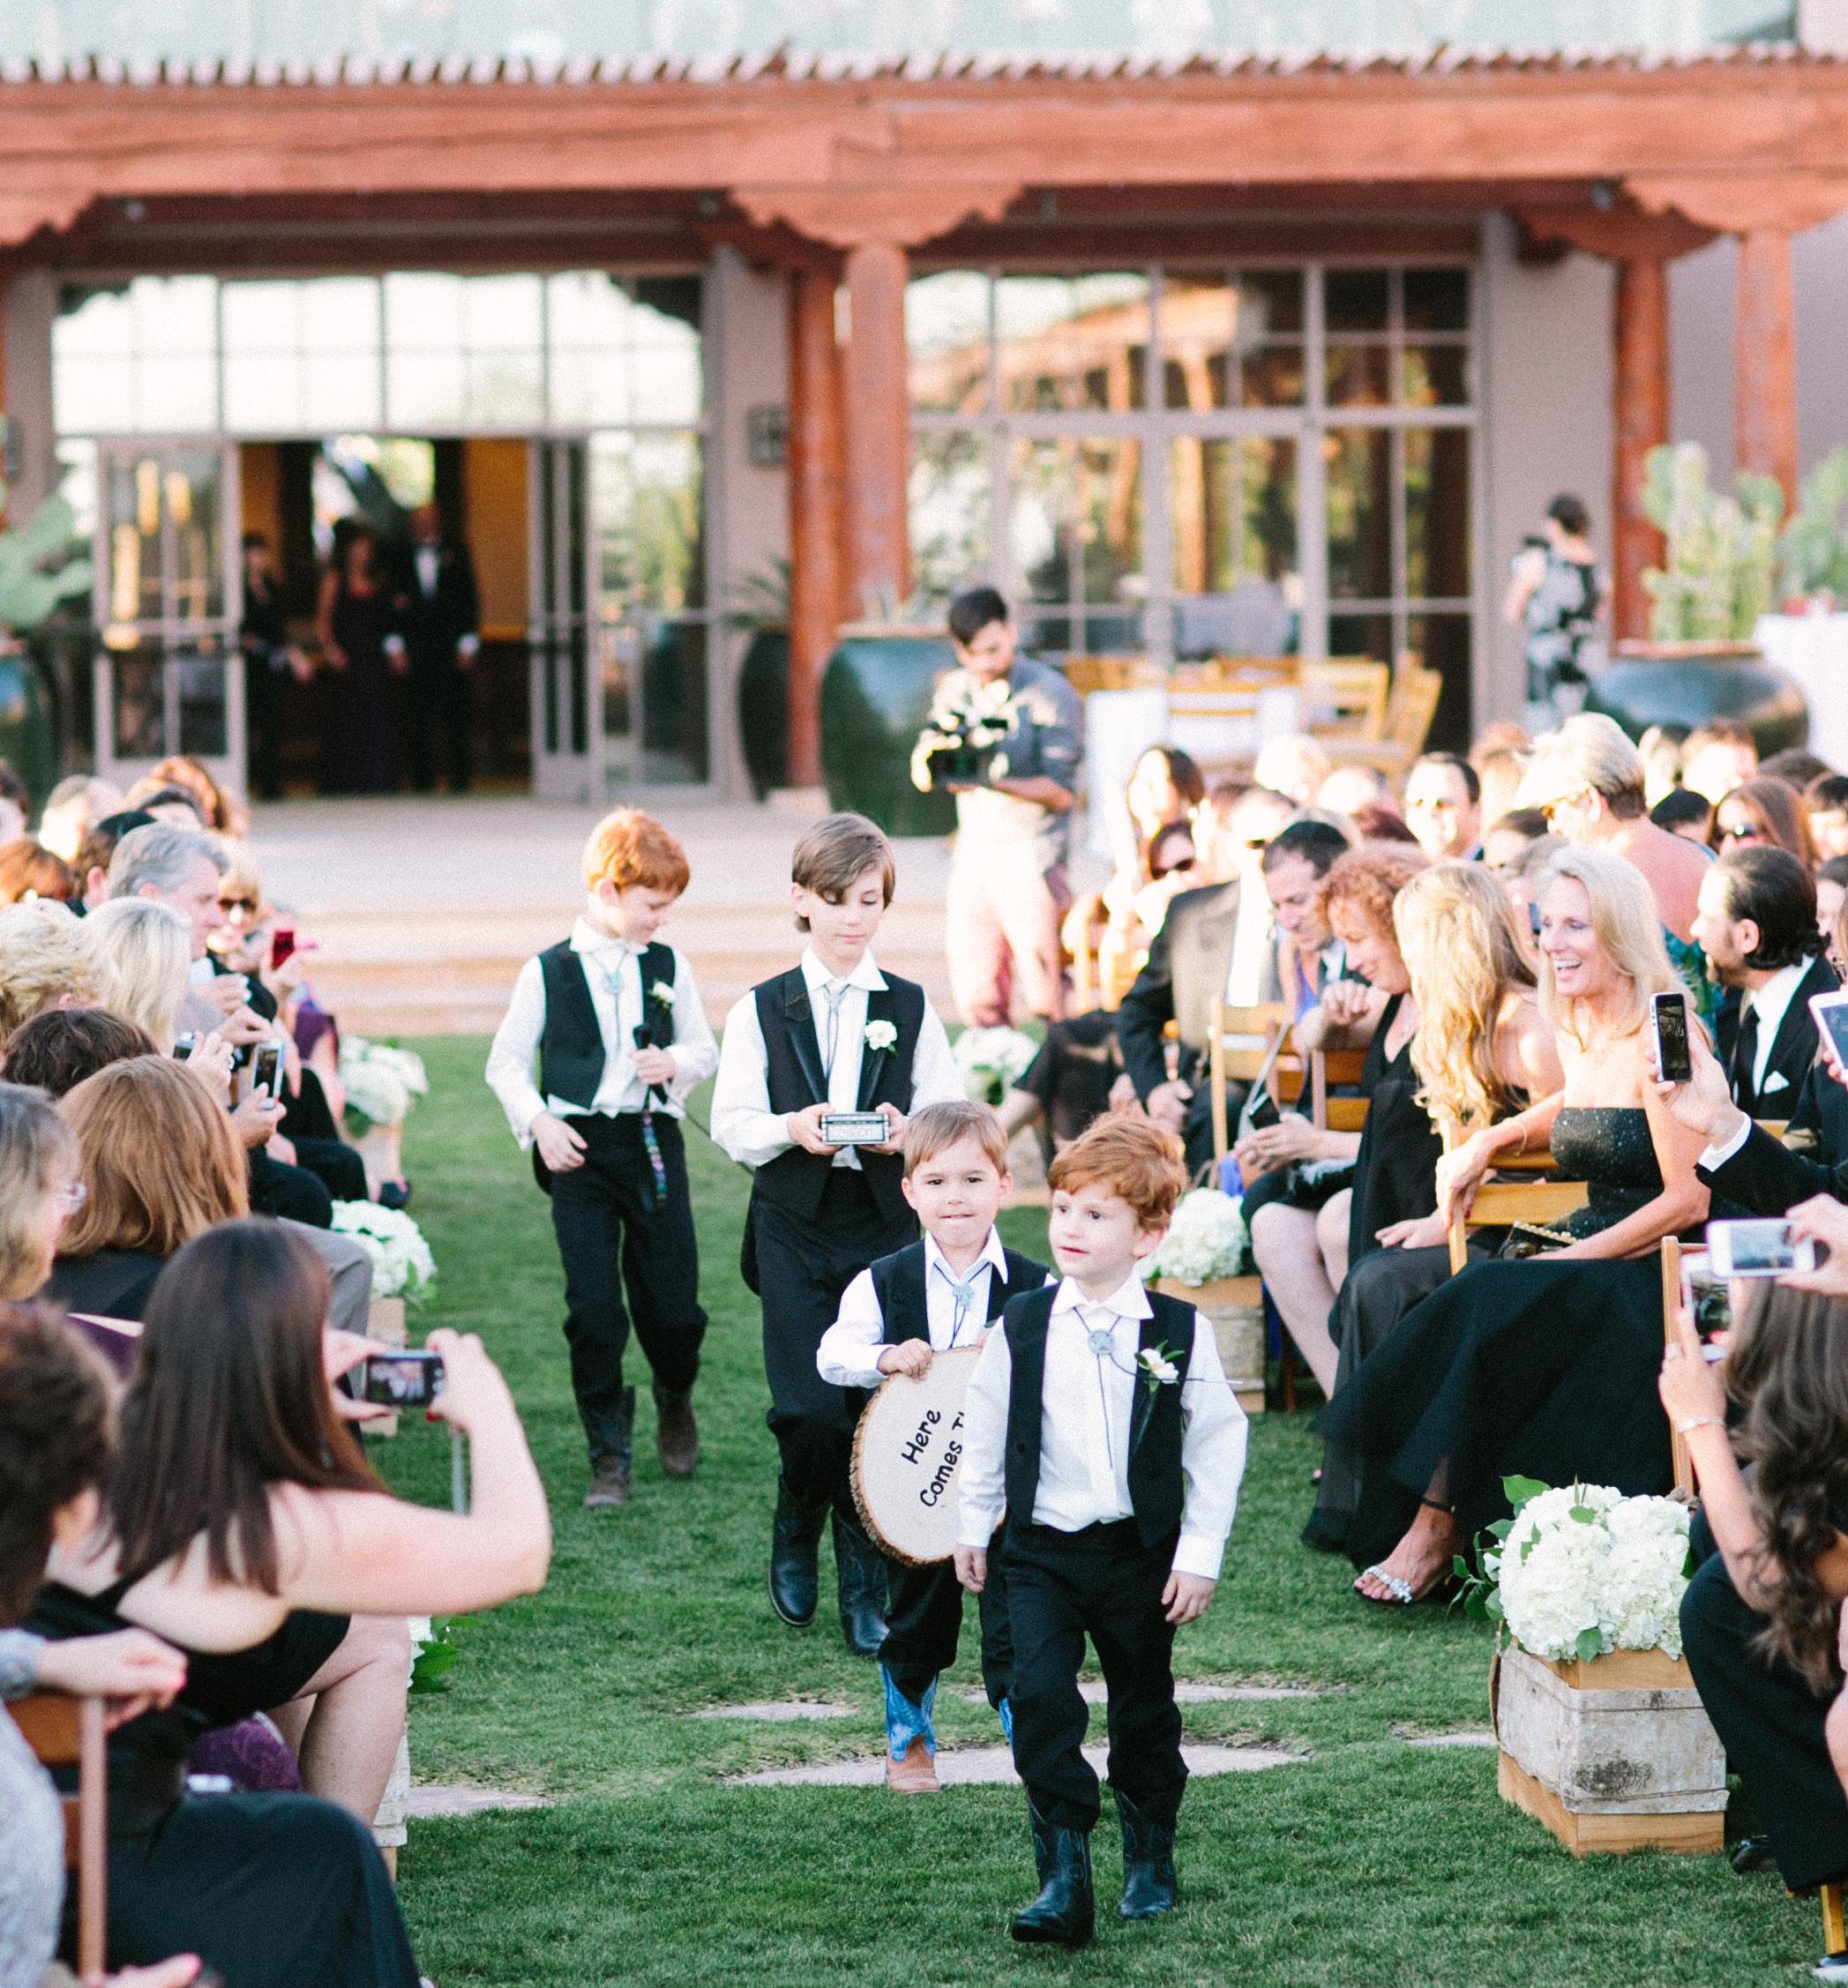 Ring bearers at outdoor rustic wedding in bolo ties, vests, cowboy boots